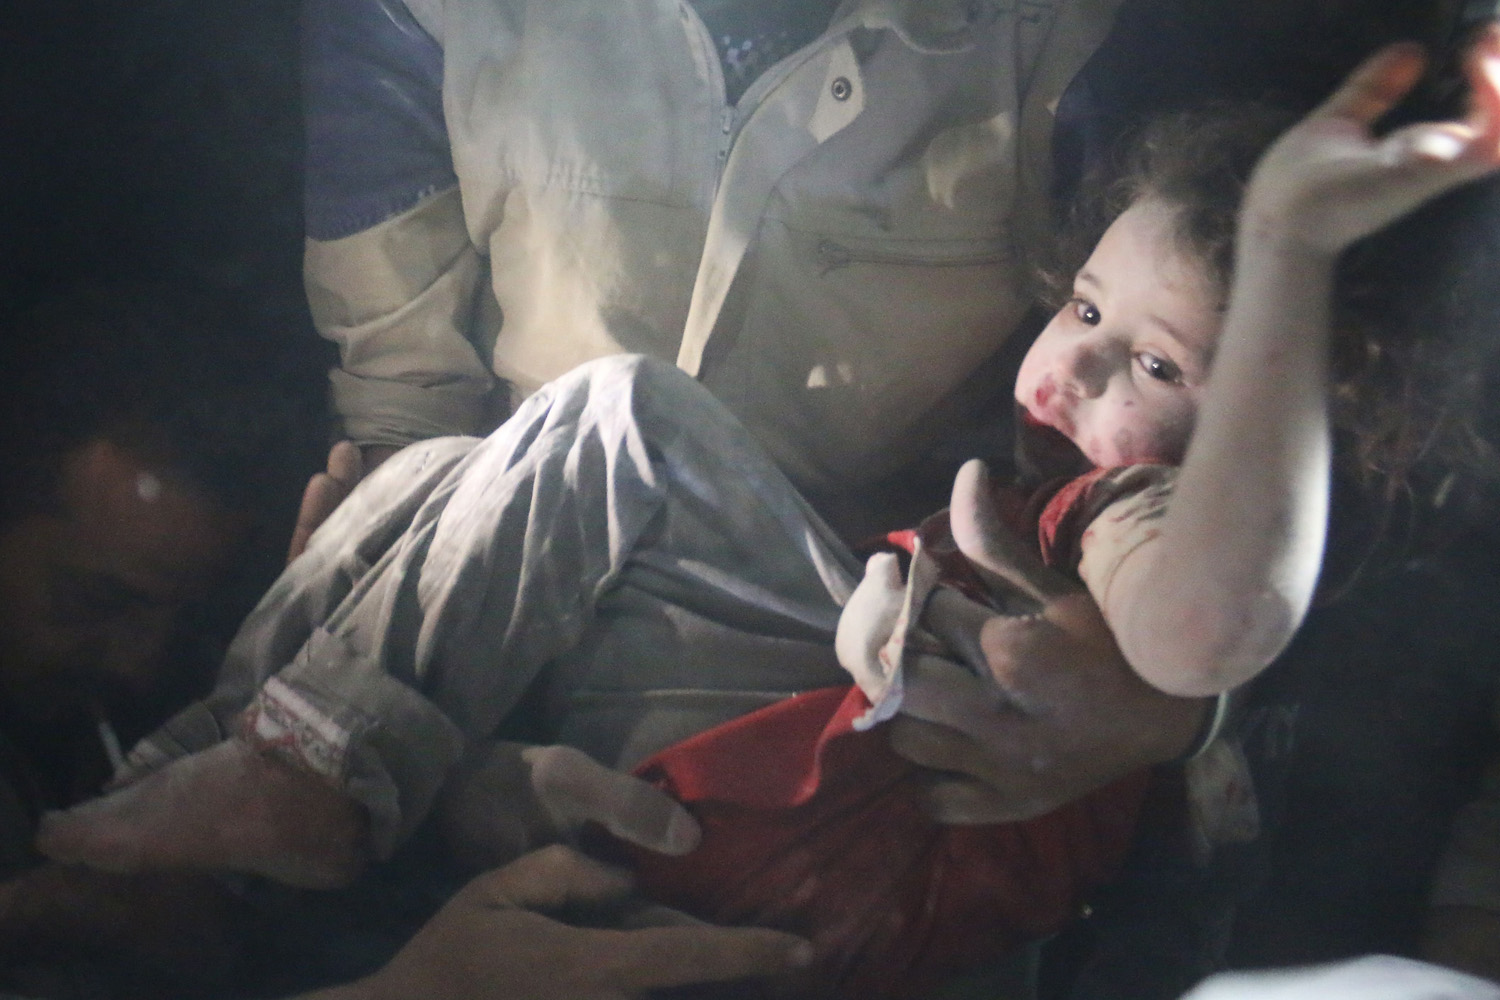 June 1, 2014. Syrian rescue workers pull out a girl from the rubble following reported barrel bomb attacks by government forces in the northern city of Aleppo.